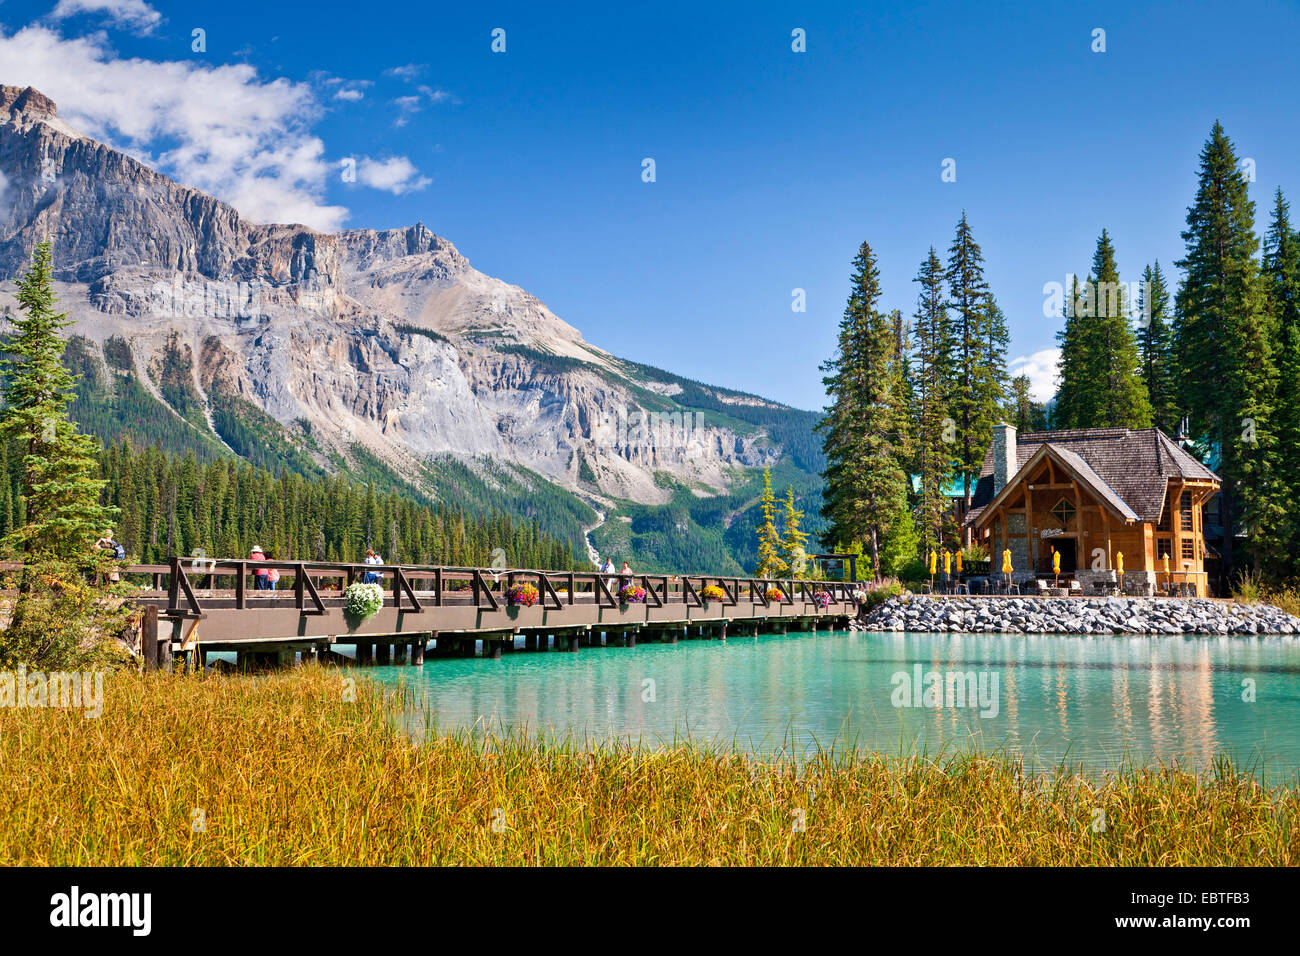 log house in Yoho National Park, Canada, British Columbia, Yoho National Park - Stock Image